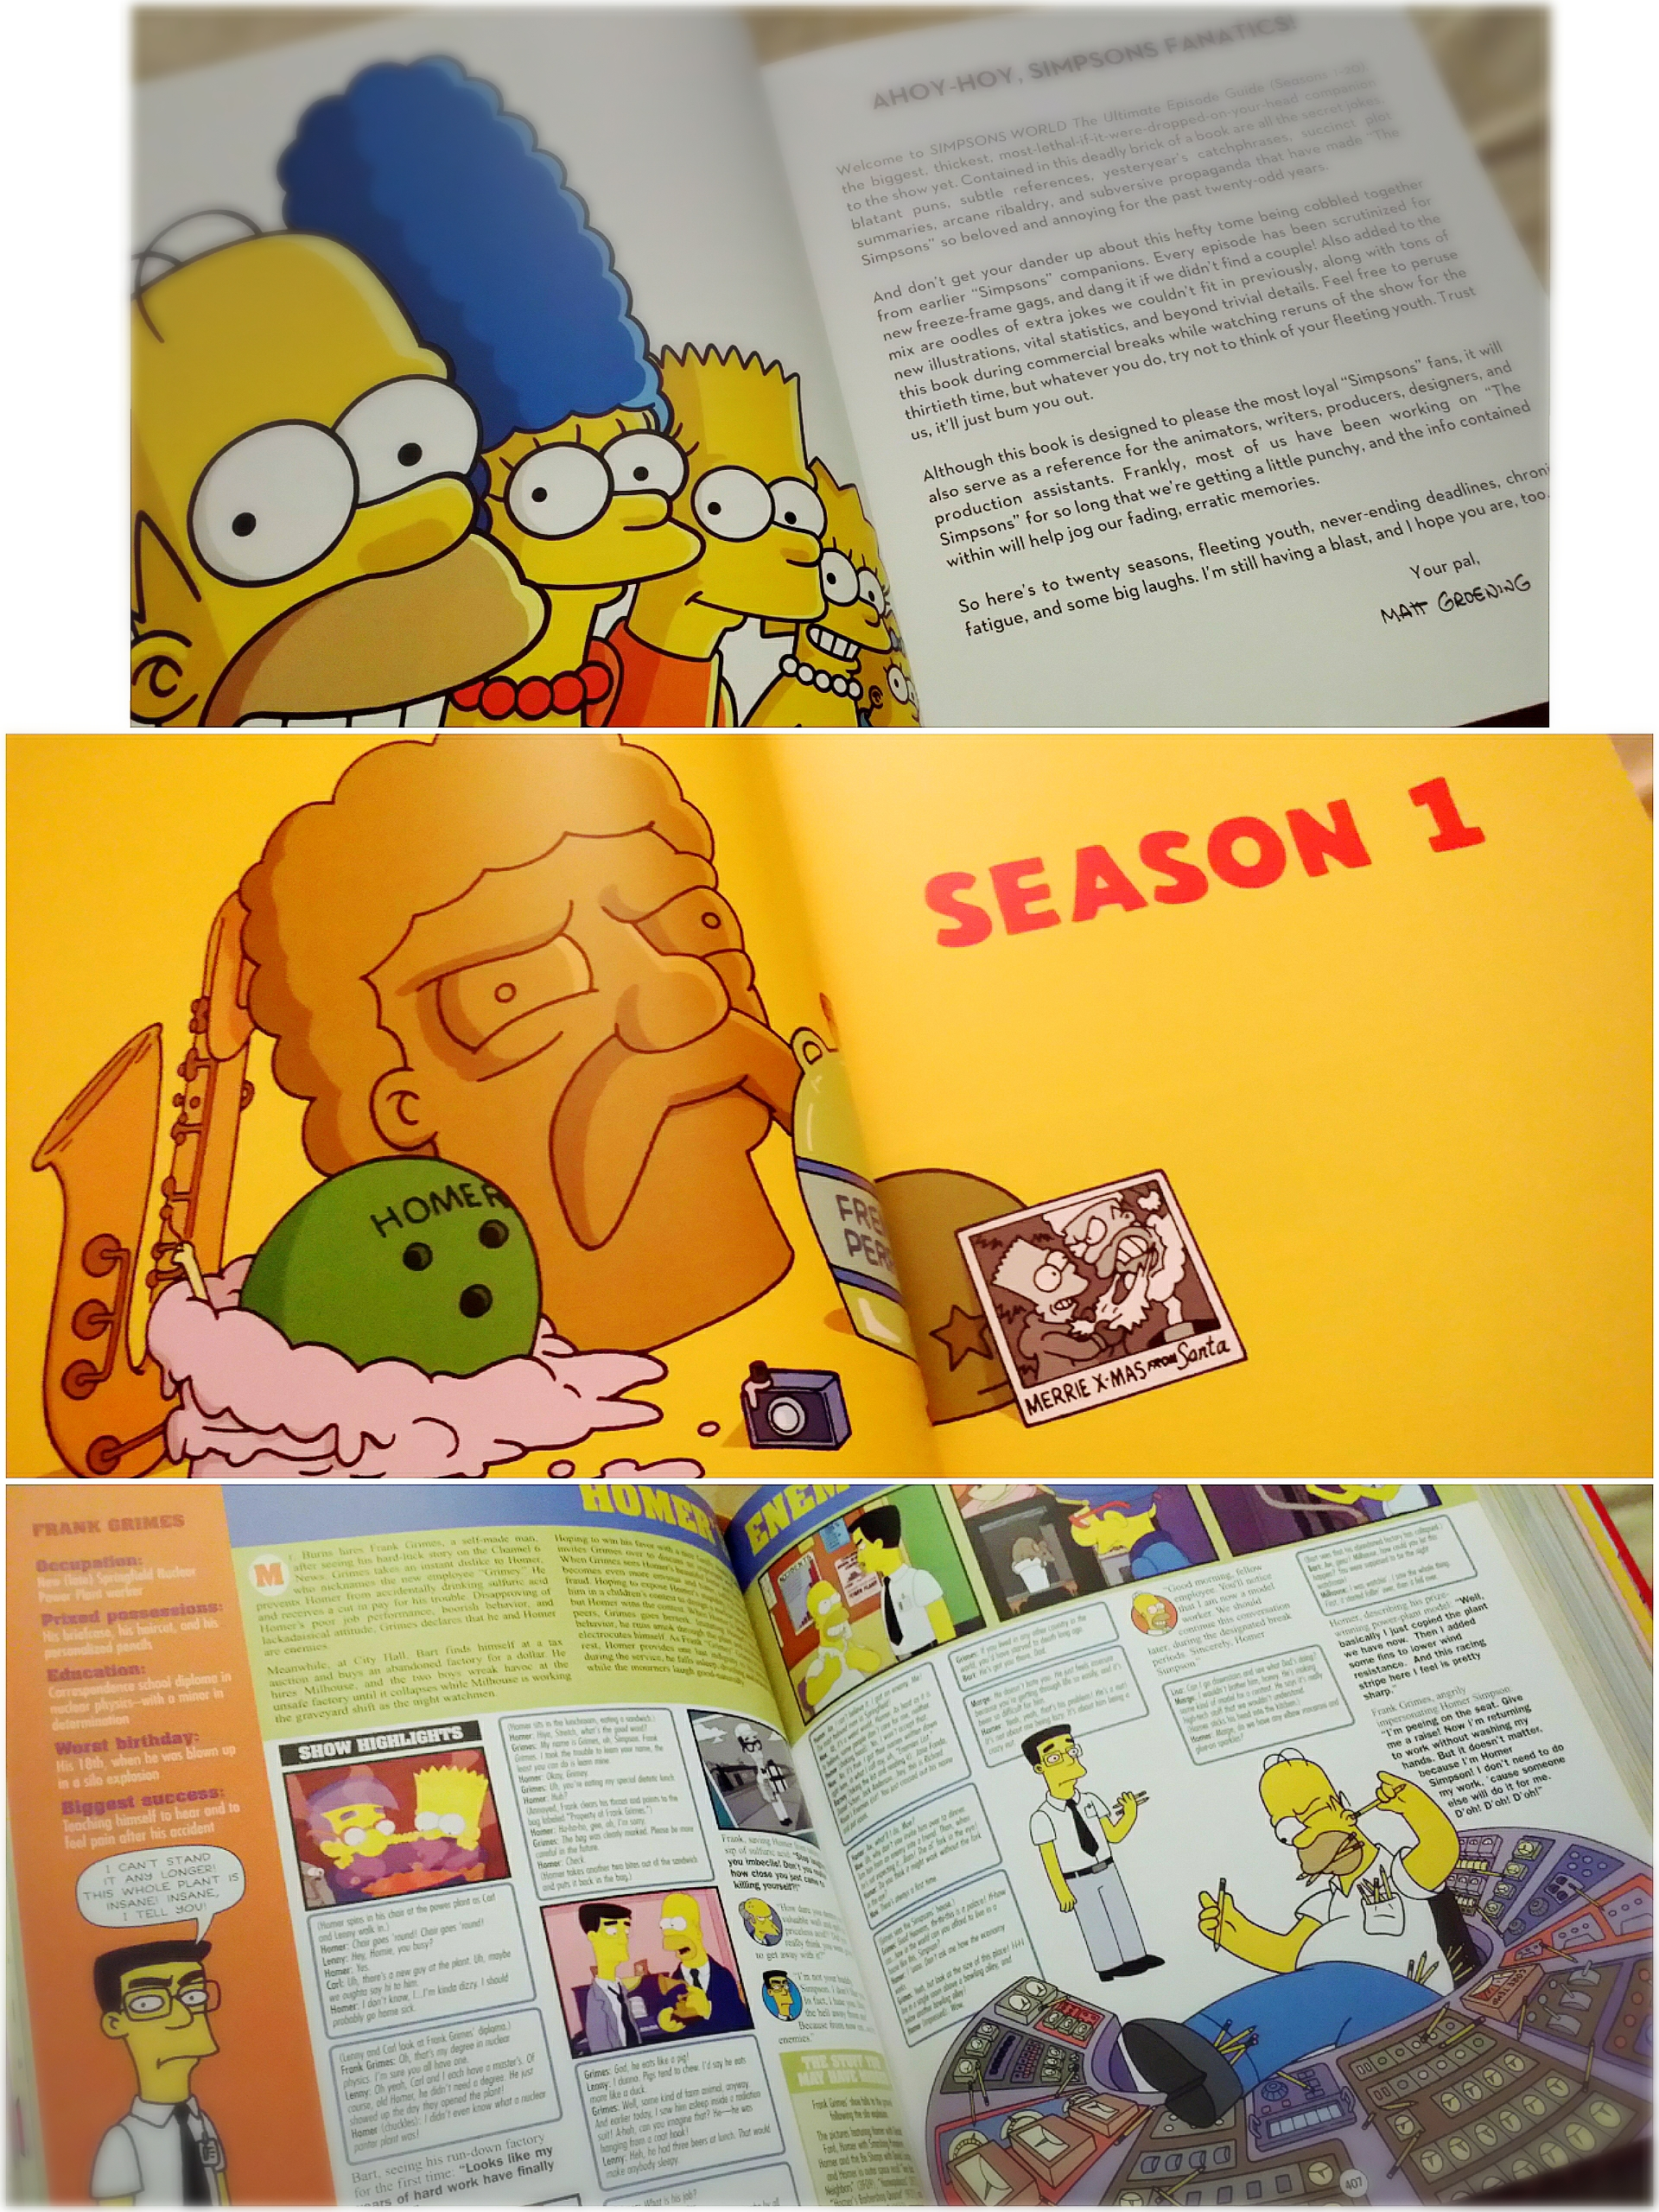 Simpsons World: The Ultimate Episode Guide - Episode 1 to 20